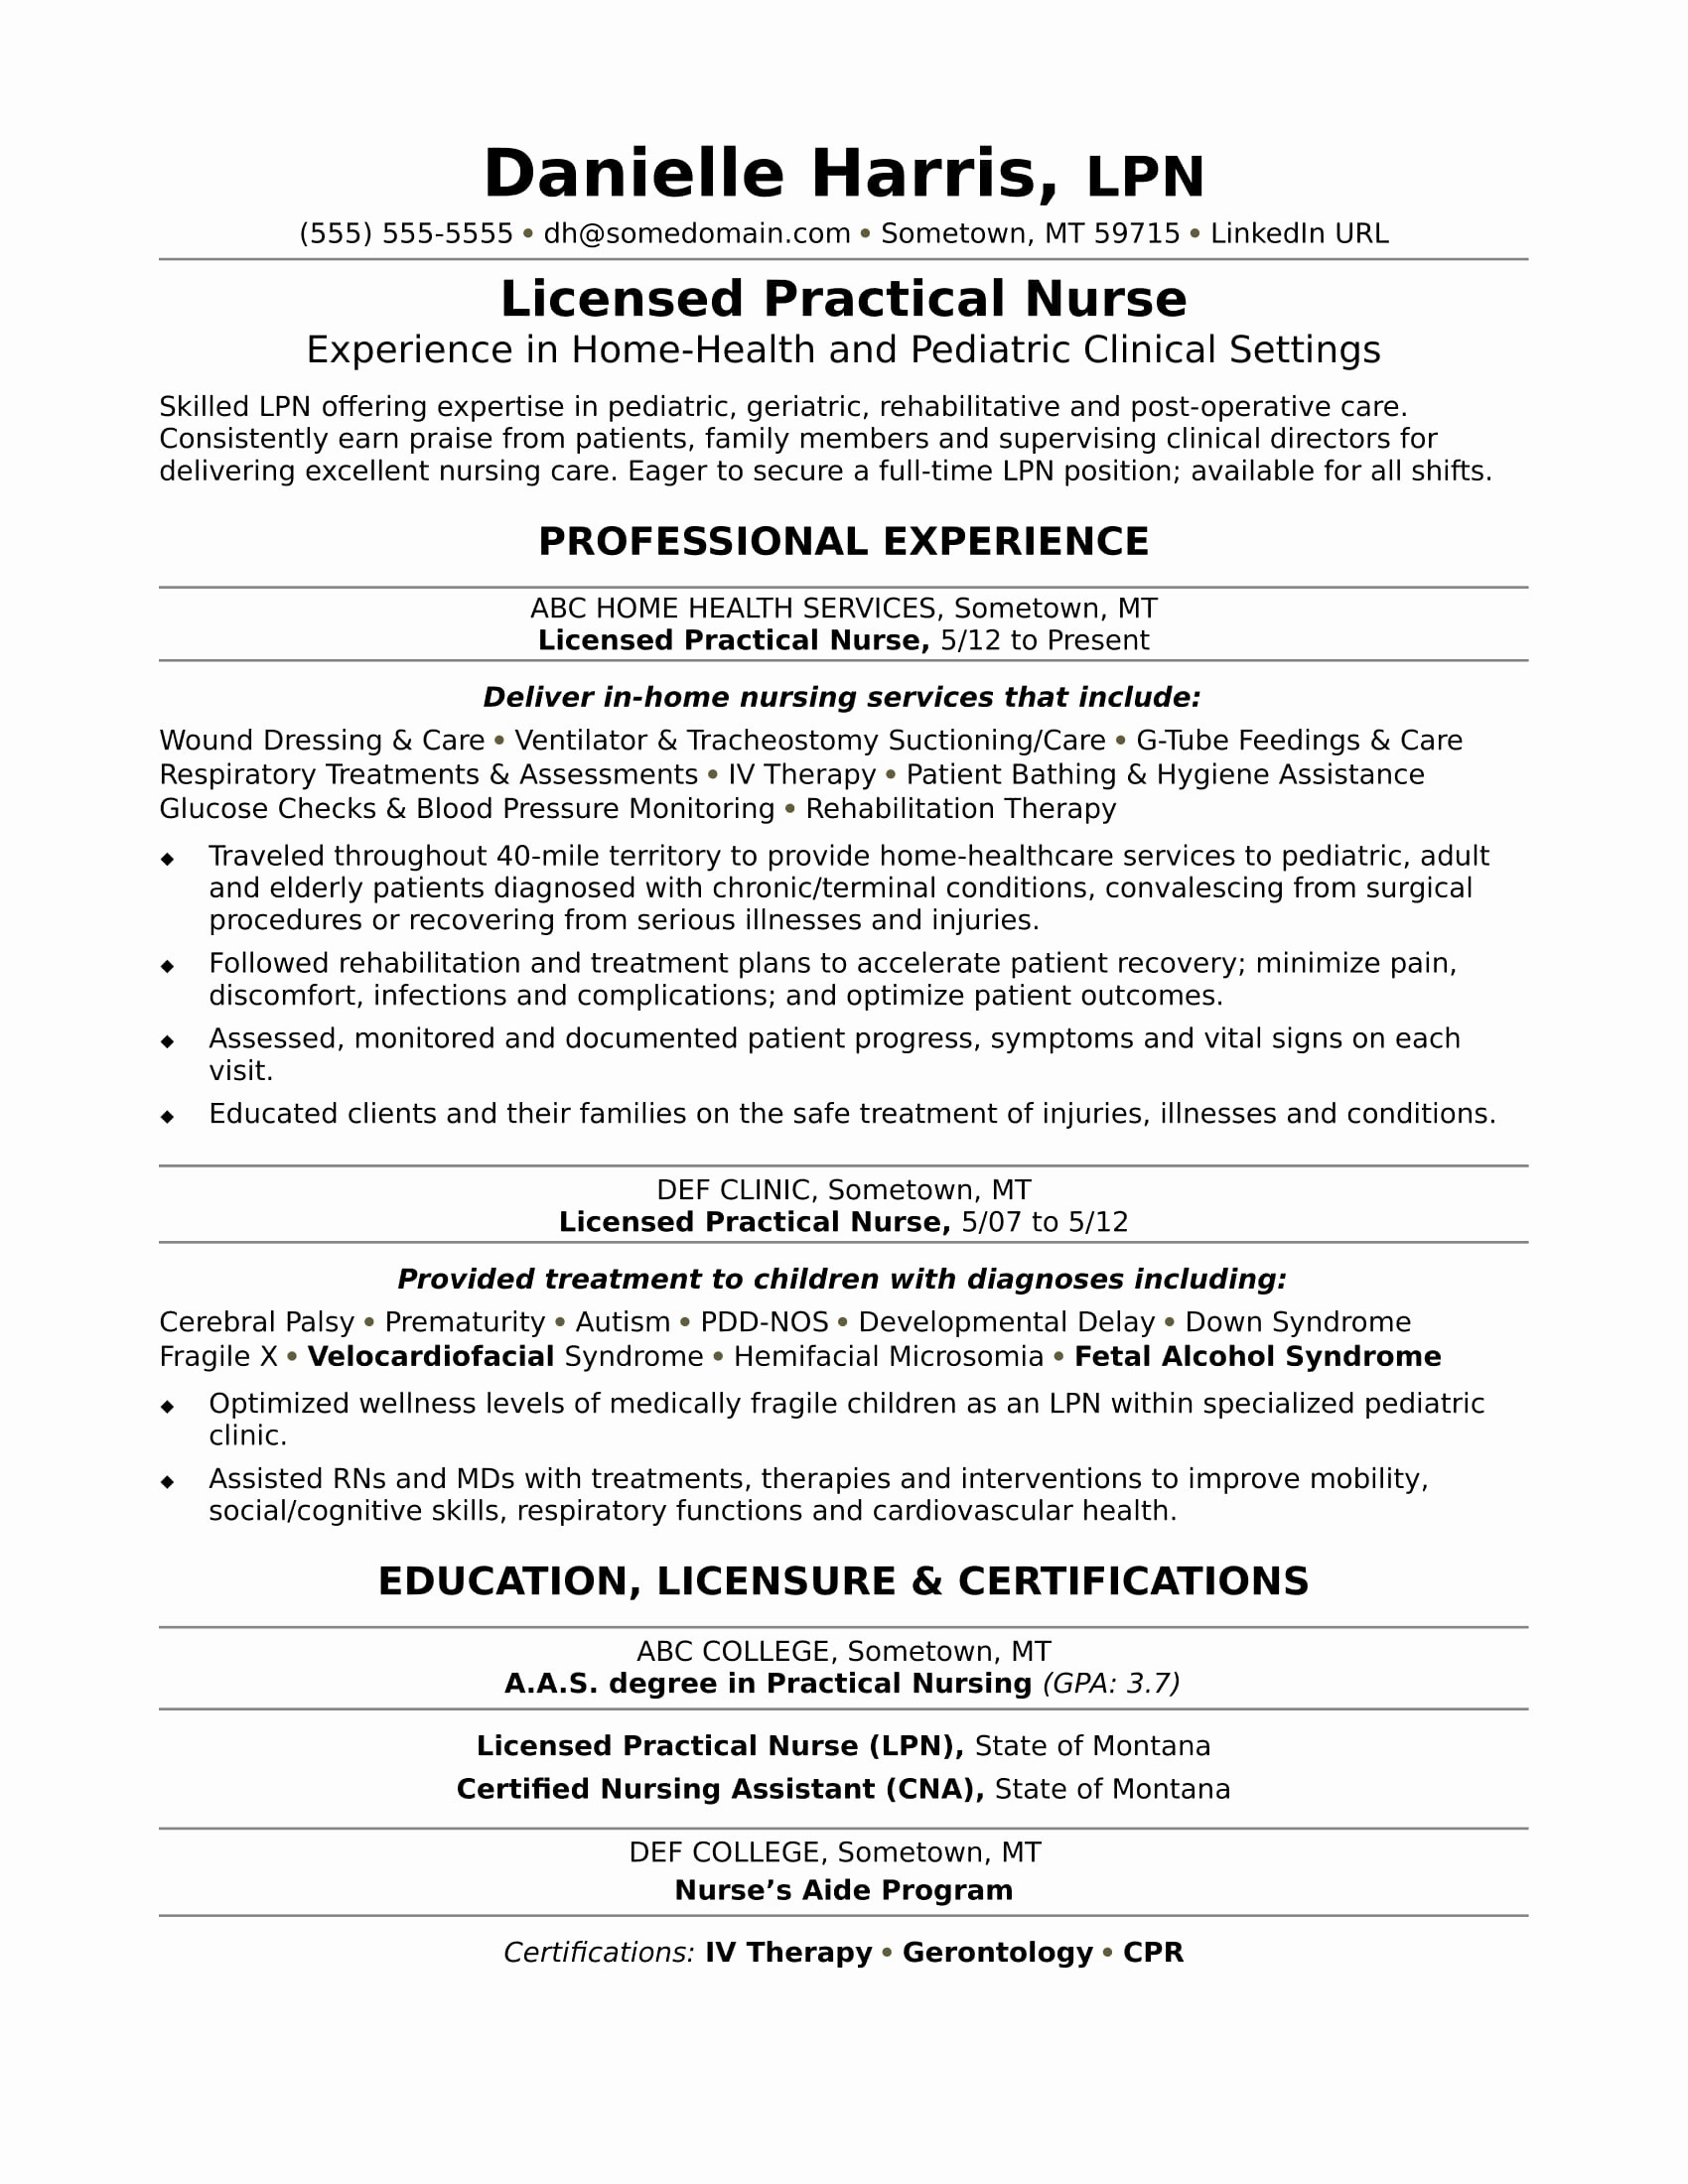 Nurse Resume Template Microsoft Word - 2017 Nursing Resume Templates for Microsoft Word Vcuregistry